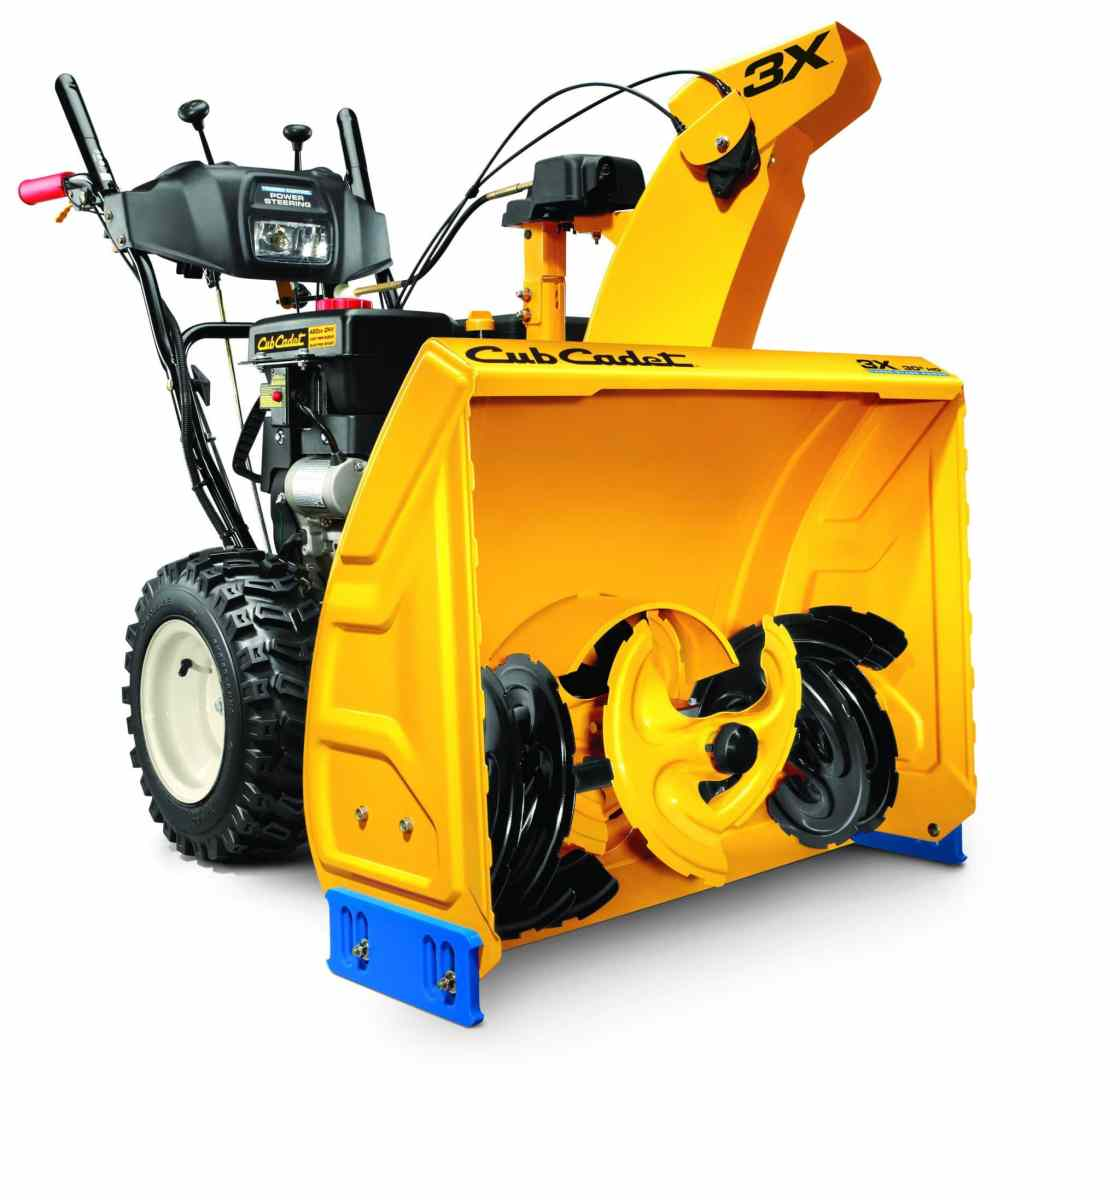 Cub Cadet 3X™ 28 & 24 inch Three-Stage Snow Blower Review